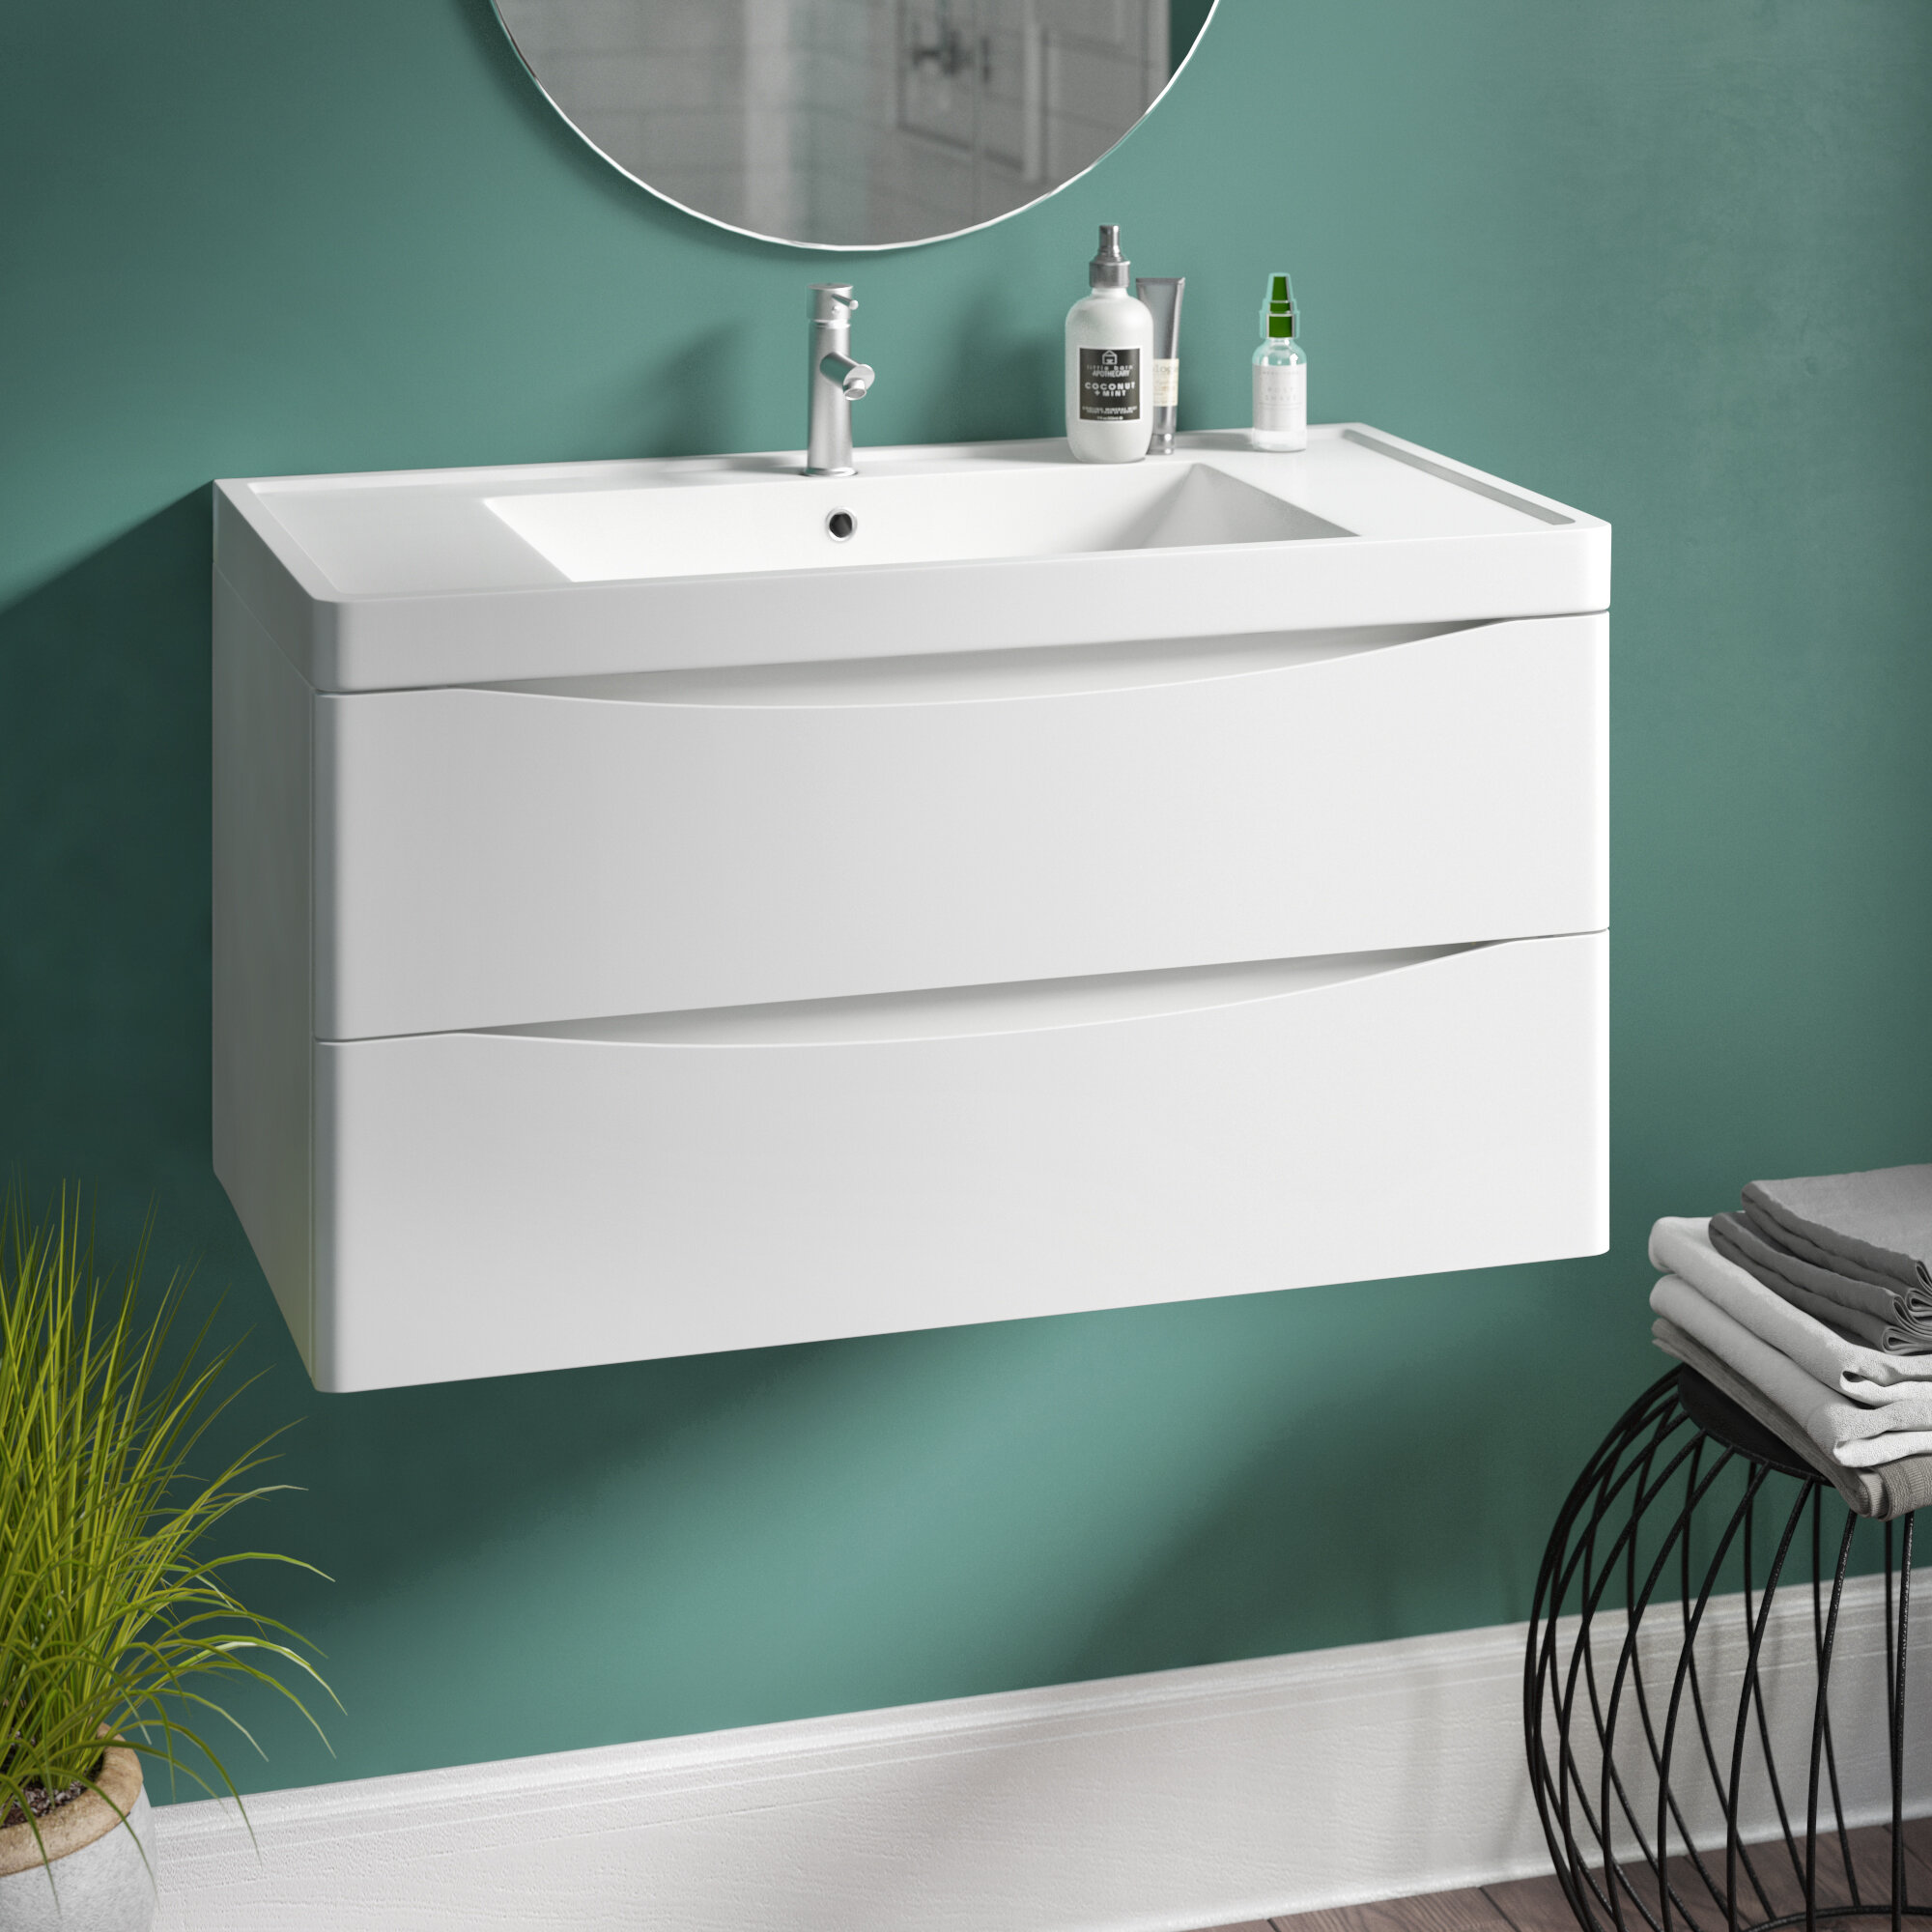 Delicieux Stanhope 900mm Wall Mount Vanity Unit